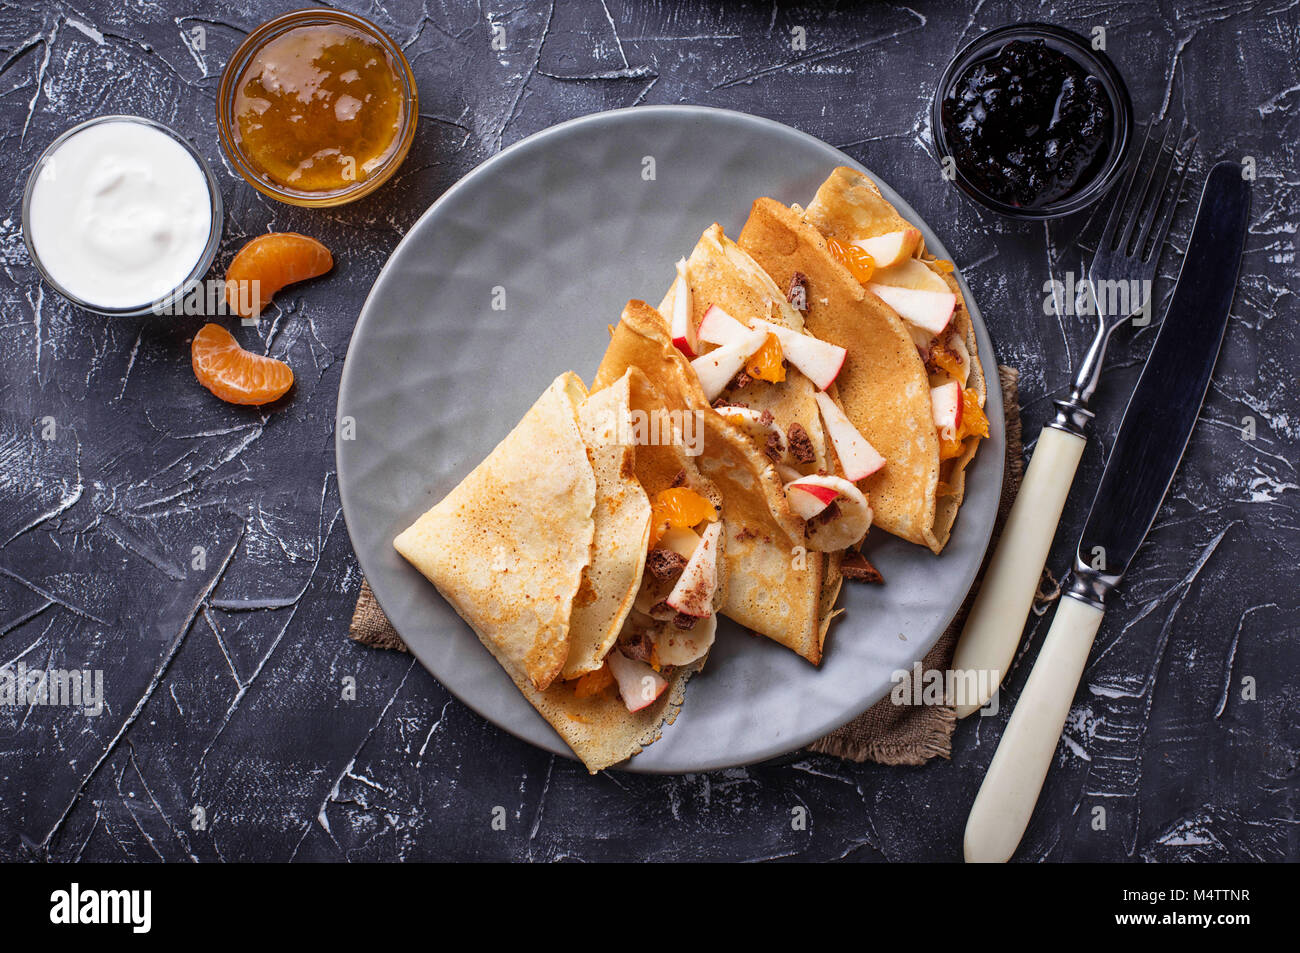 Pancakes crepes with different fruits and chocolate - Stock Image